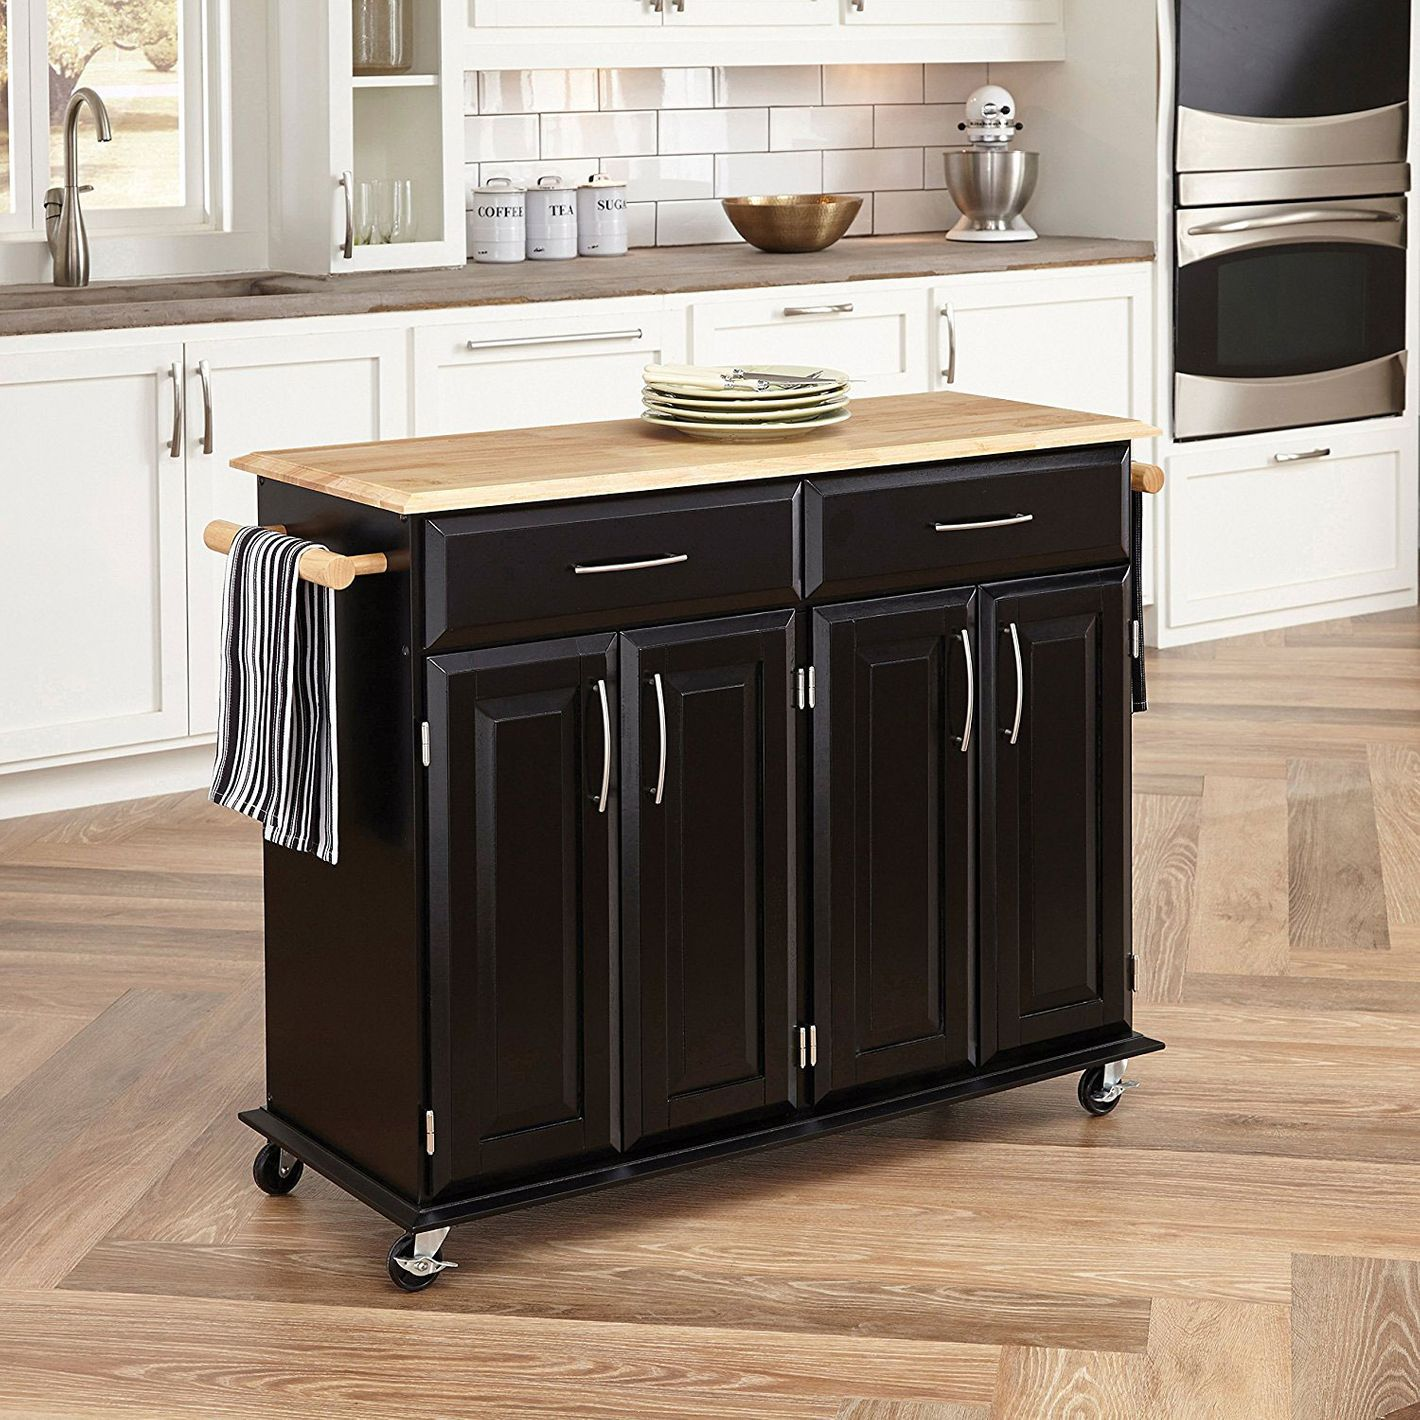 Butcher Block Island With Two Drawers Home Styles 4528 95 Dolly Madison Kitchen Cart Black Finish